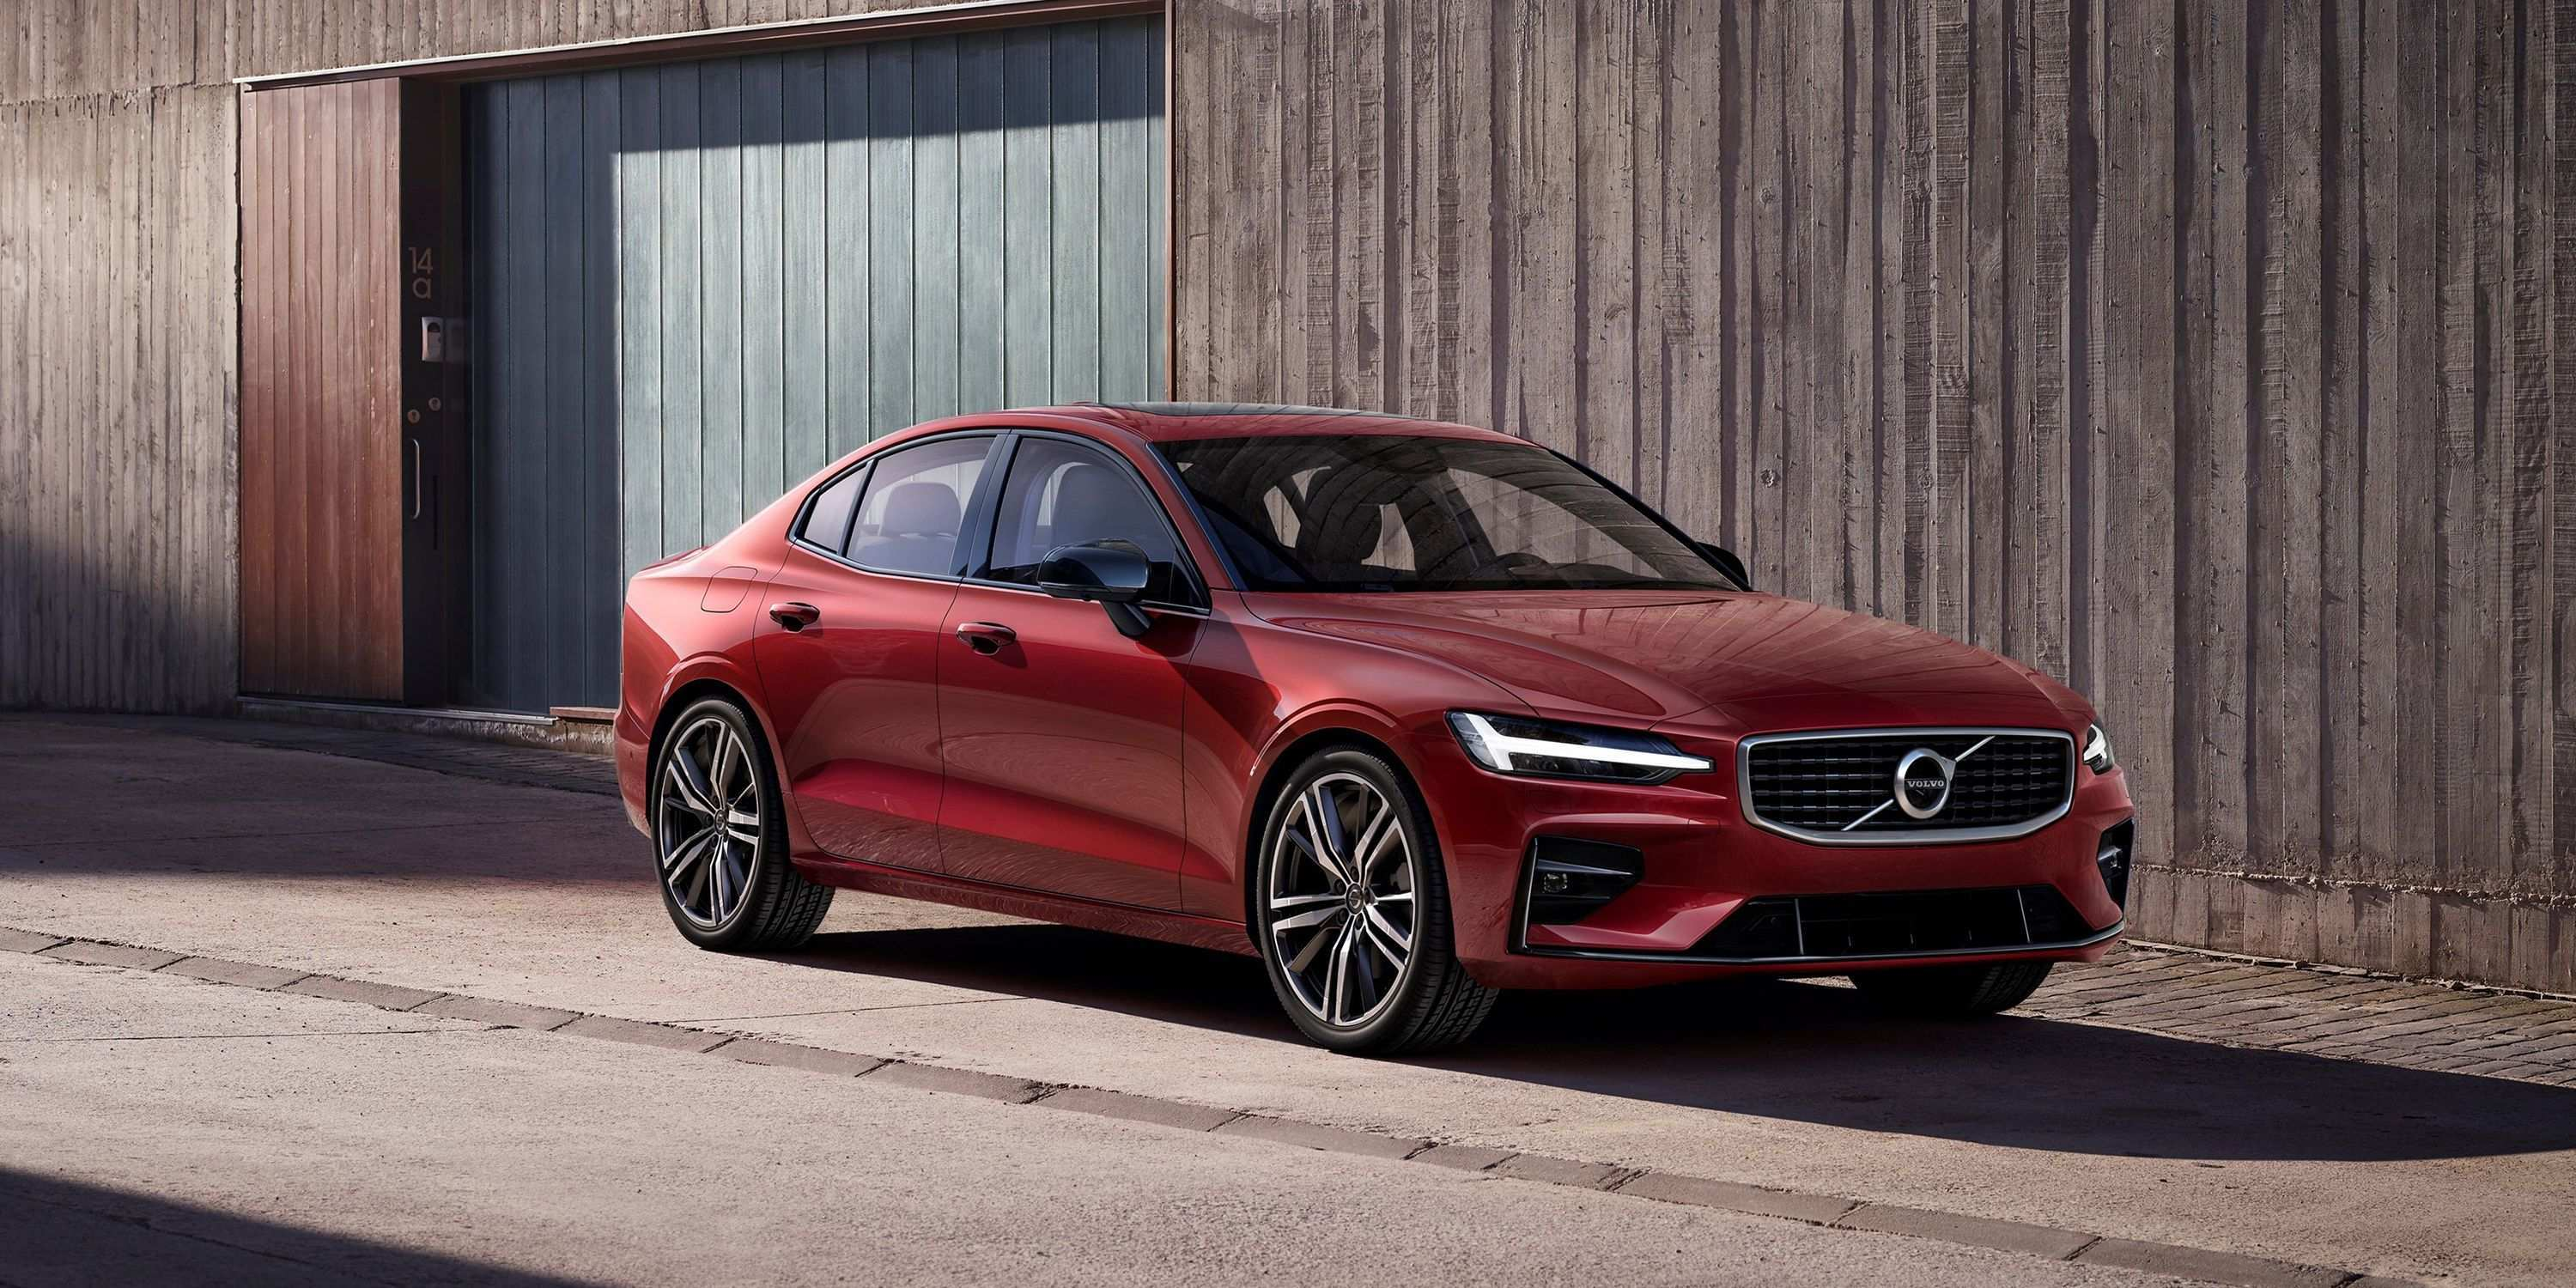 67 Concept of Volvo S60 2020 News Reviews with Volvo S60 2020 News